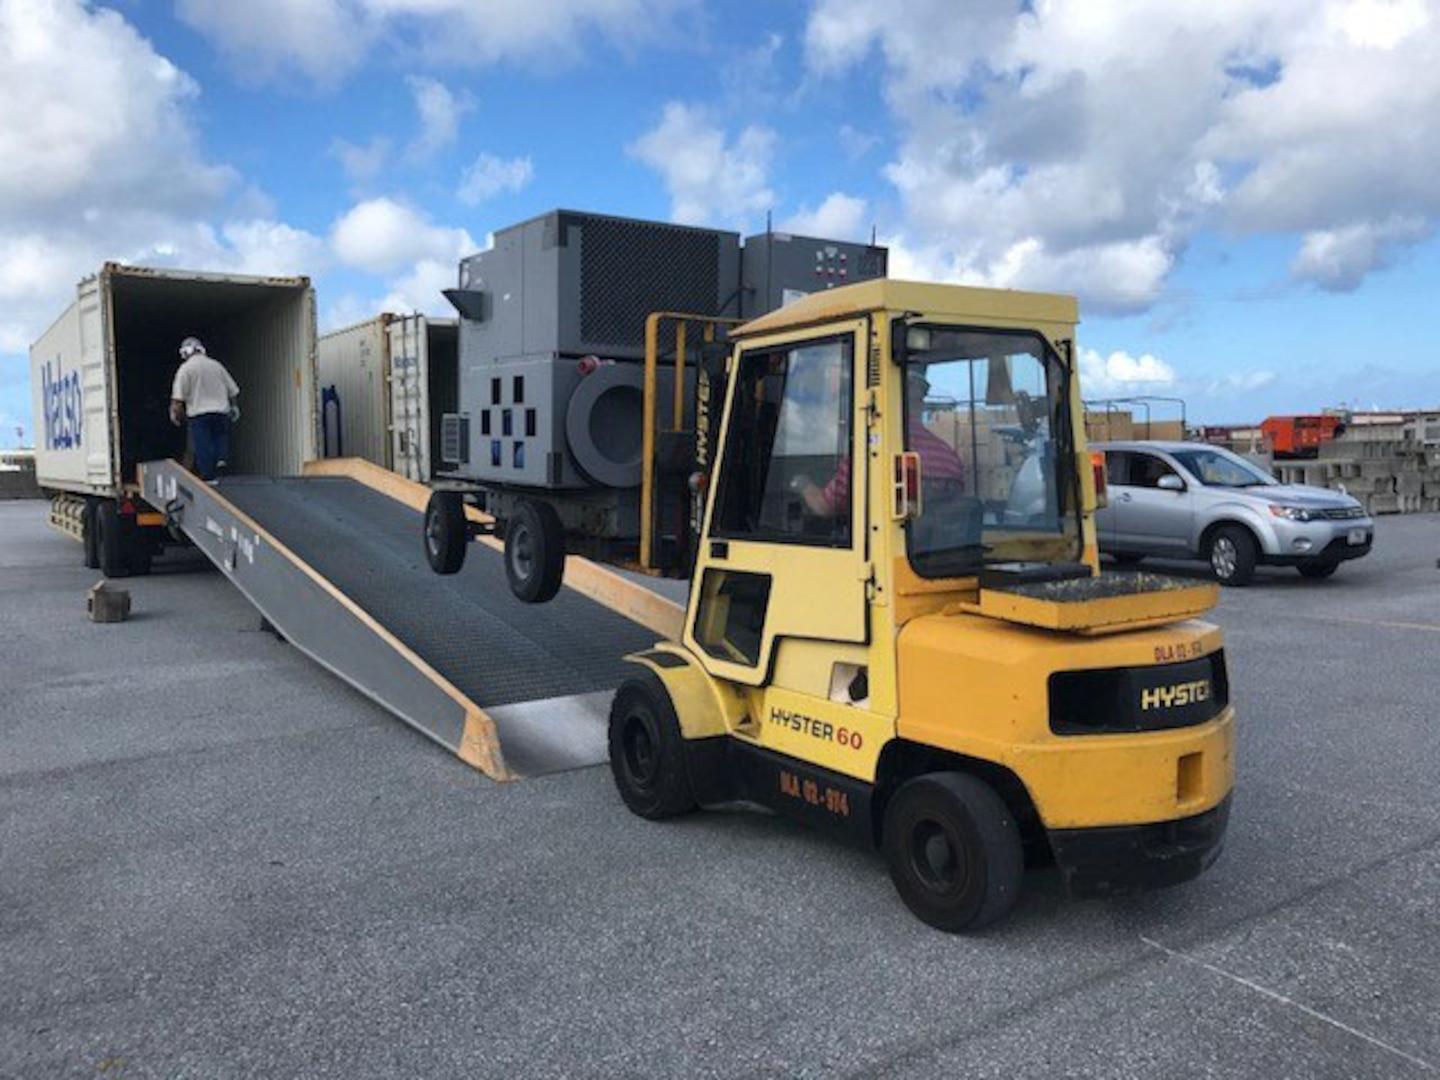 DLA Disposition Services employees provide the loading support to move the items into the shipping containers.